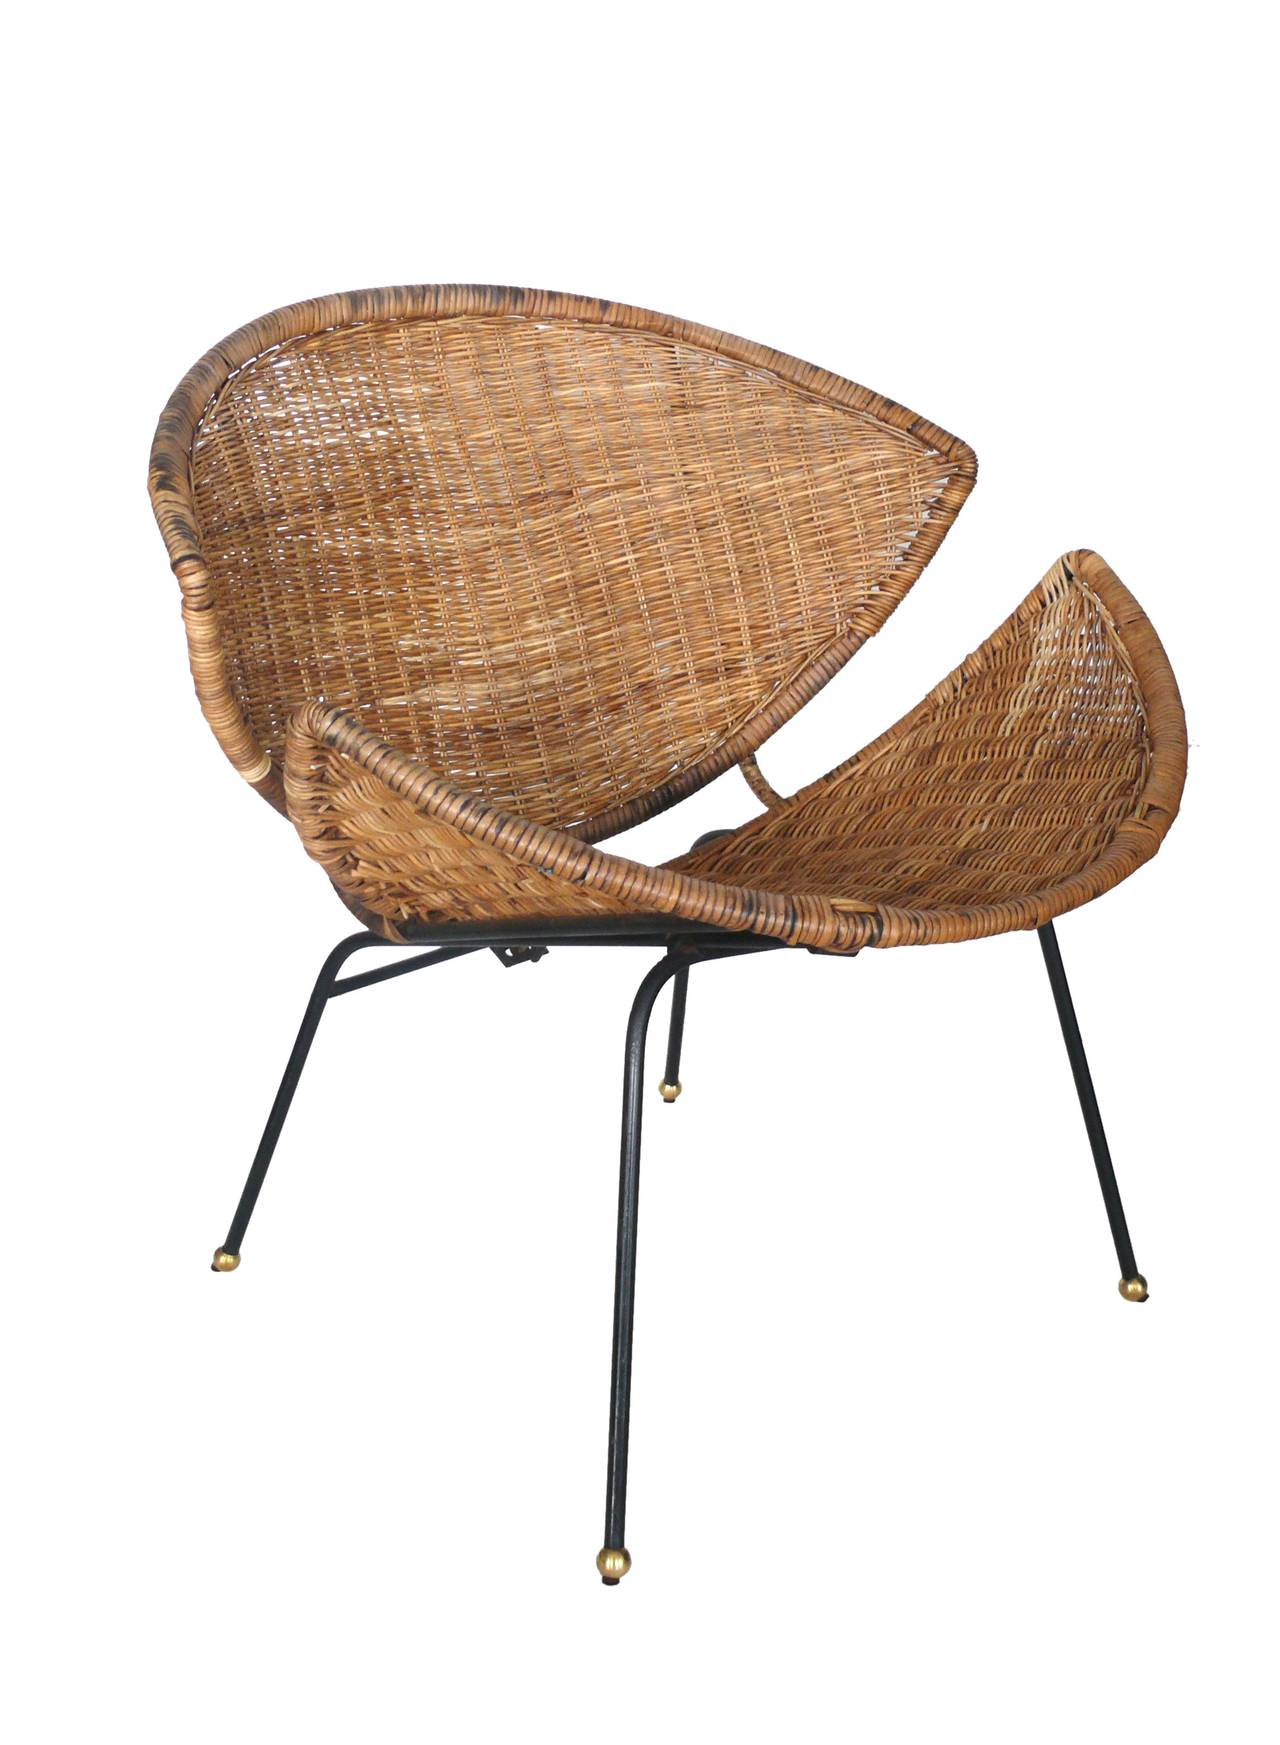 clam shell chair acrylic dining chairs sculptural wicker and rattan at 1stdibs